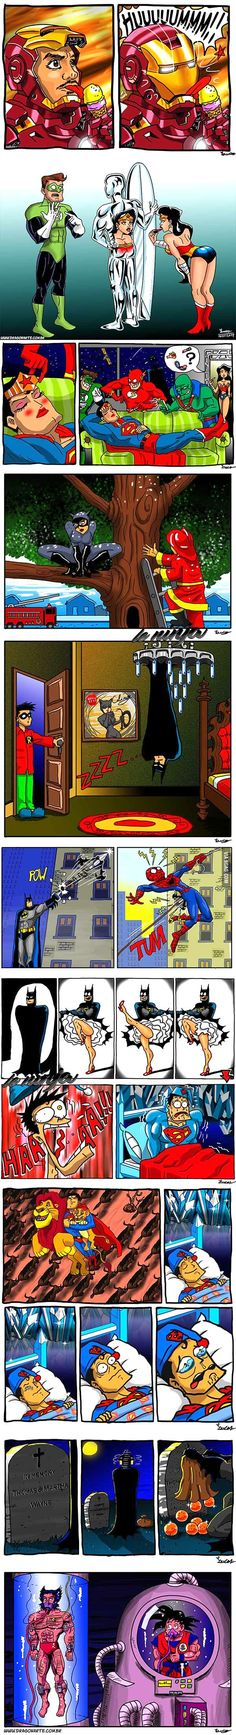 Super Heroes fun time comic